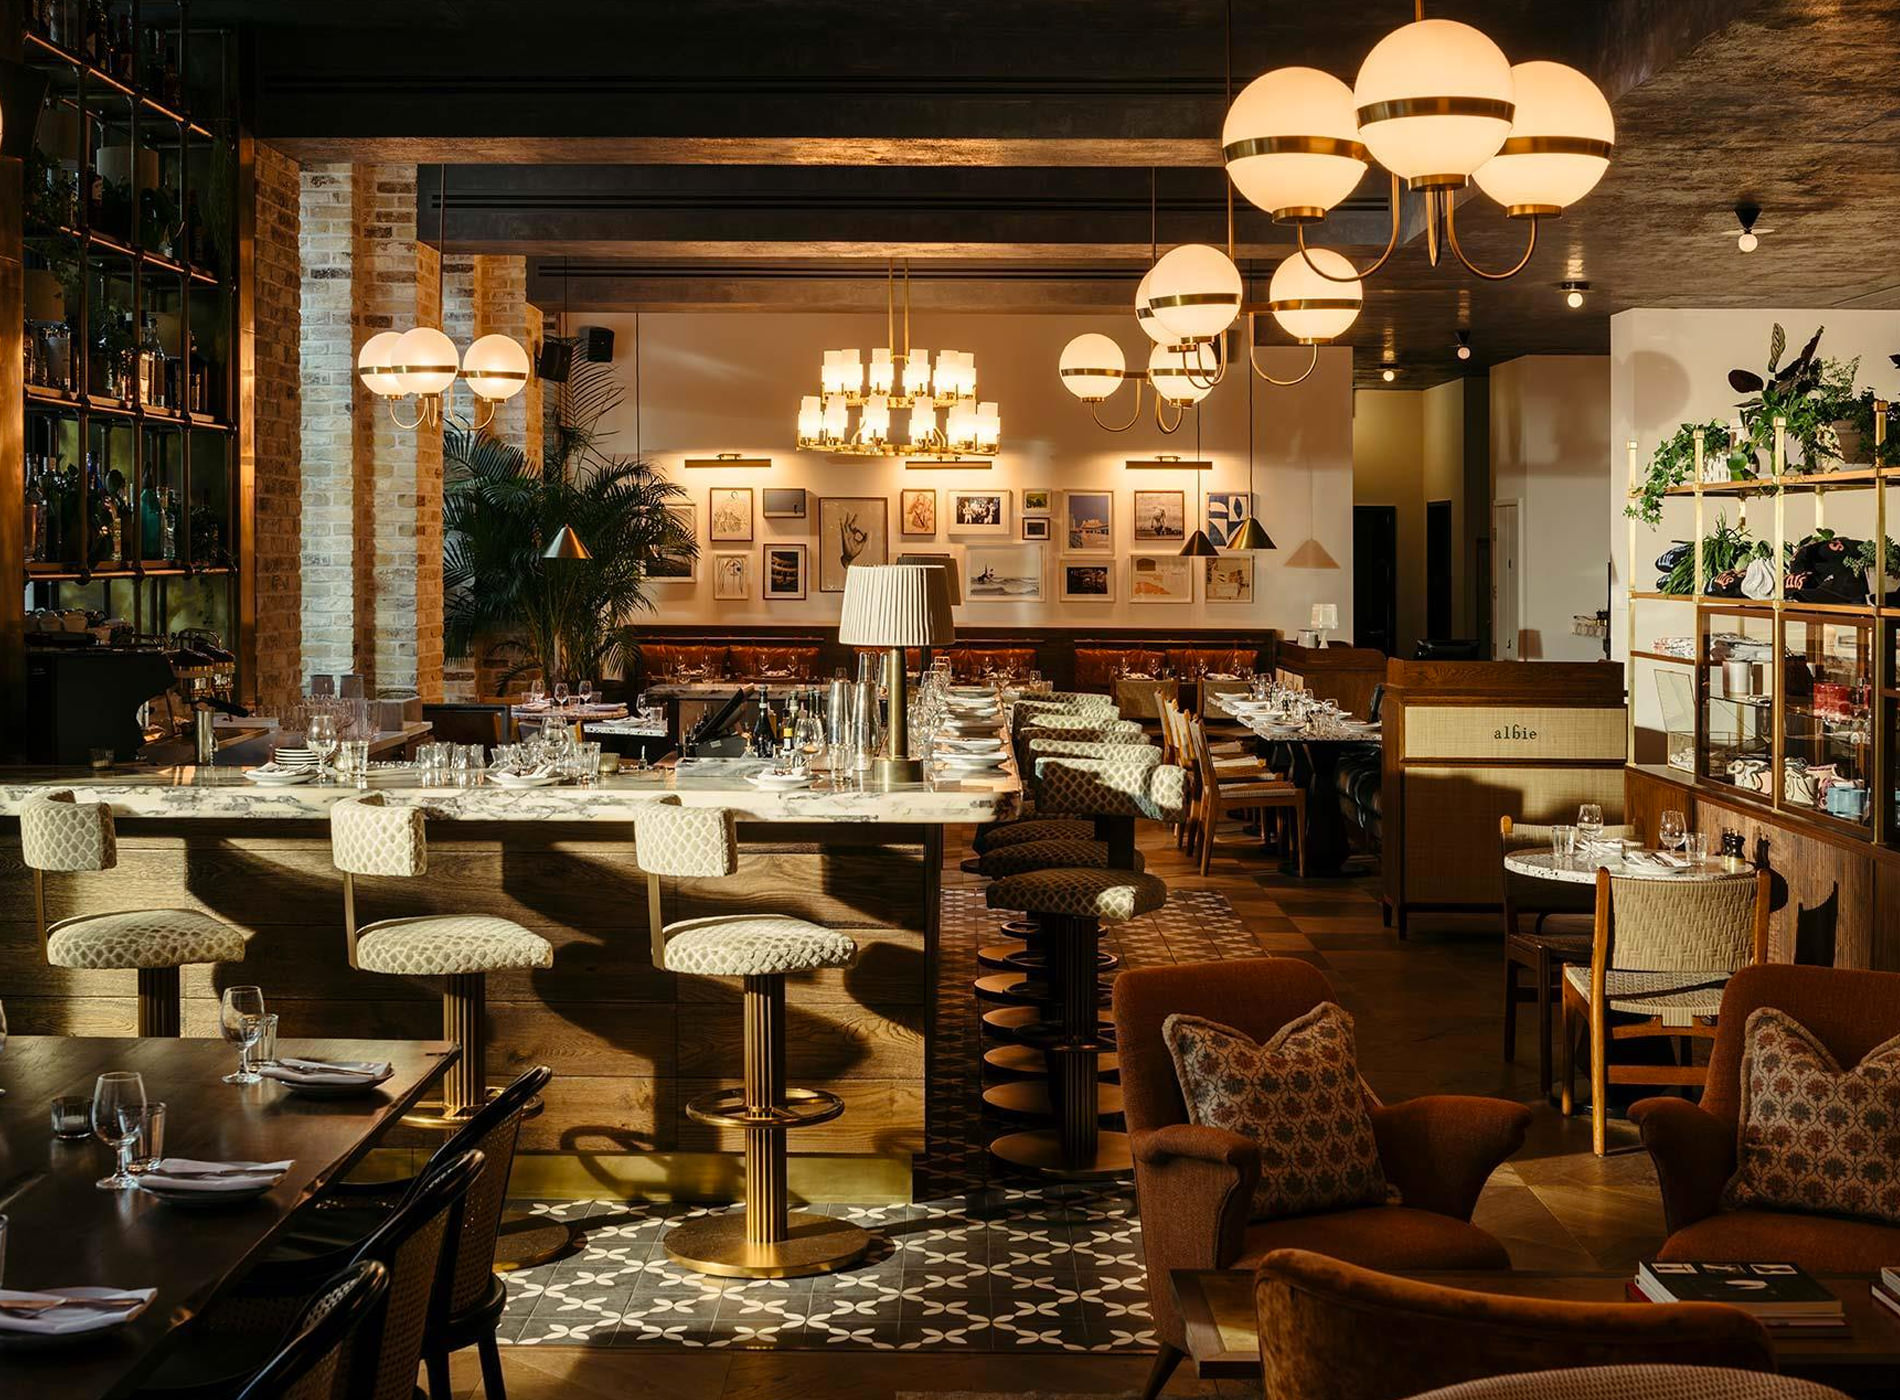 City Guide Londres The Hoxton Southwark Hotel Blackfriars Road London Albie Restaurant Diner